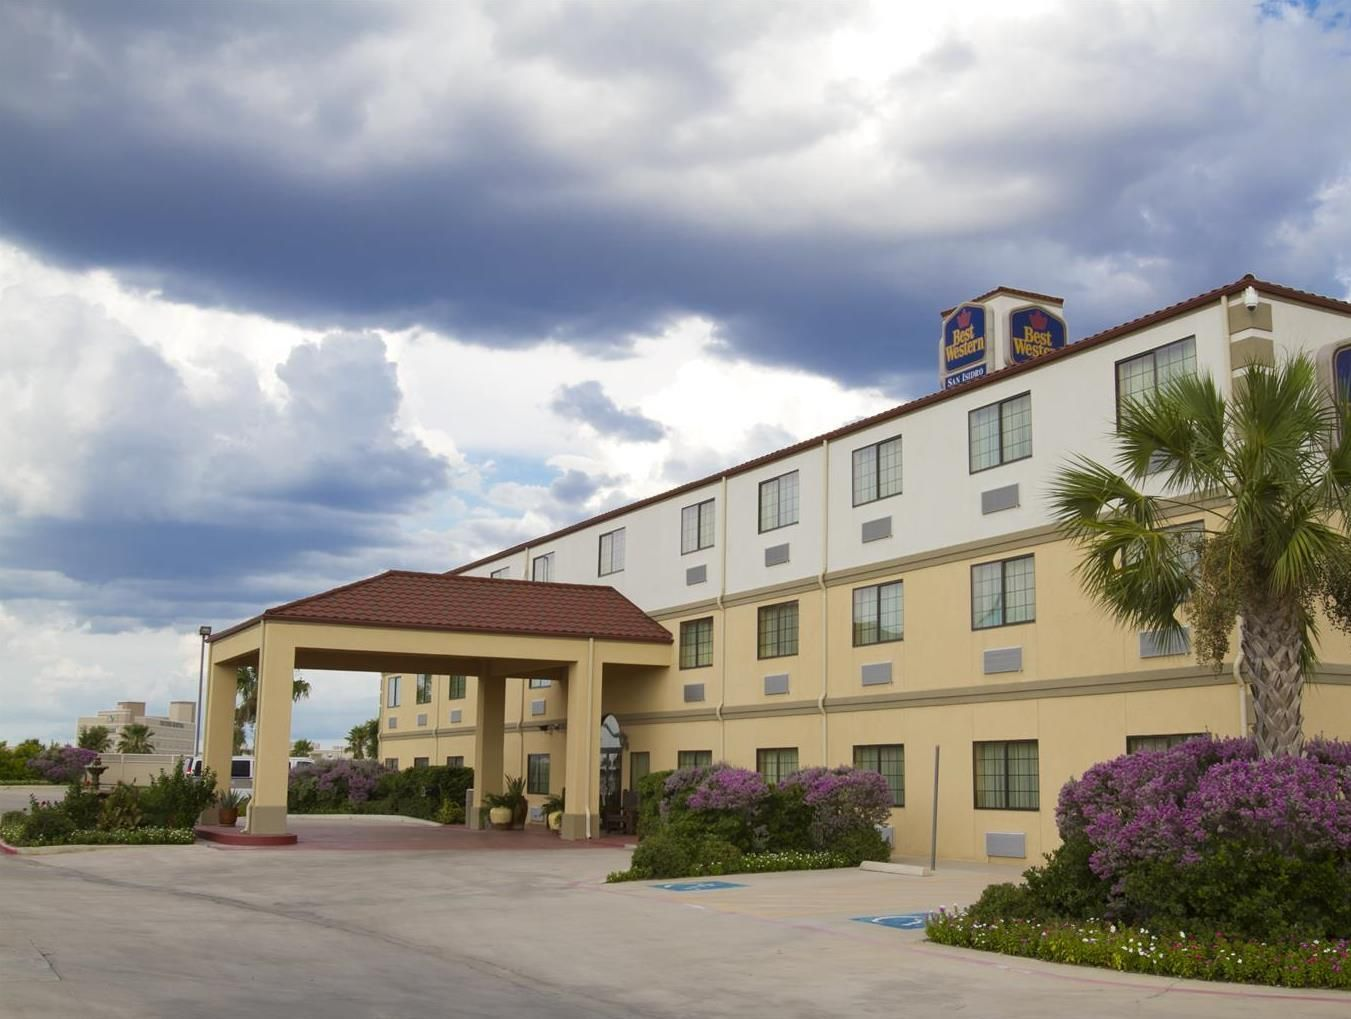 Best Western San Isidro Inn Laredo Texas Less Than 10 Minutes Drive From City Centre And The Mexican Border This Hotel Features Rooms With Free